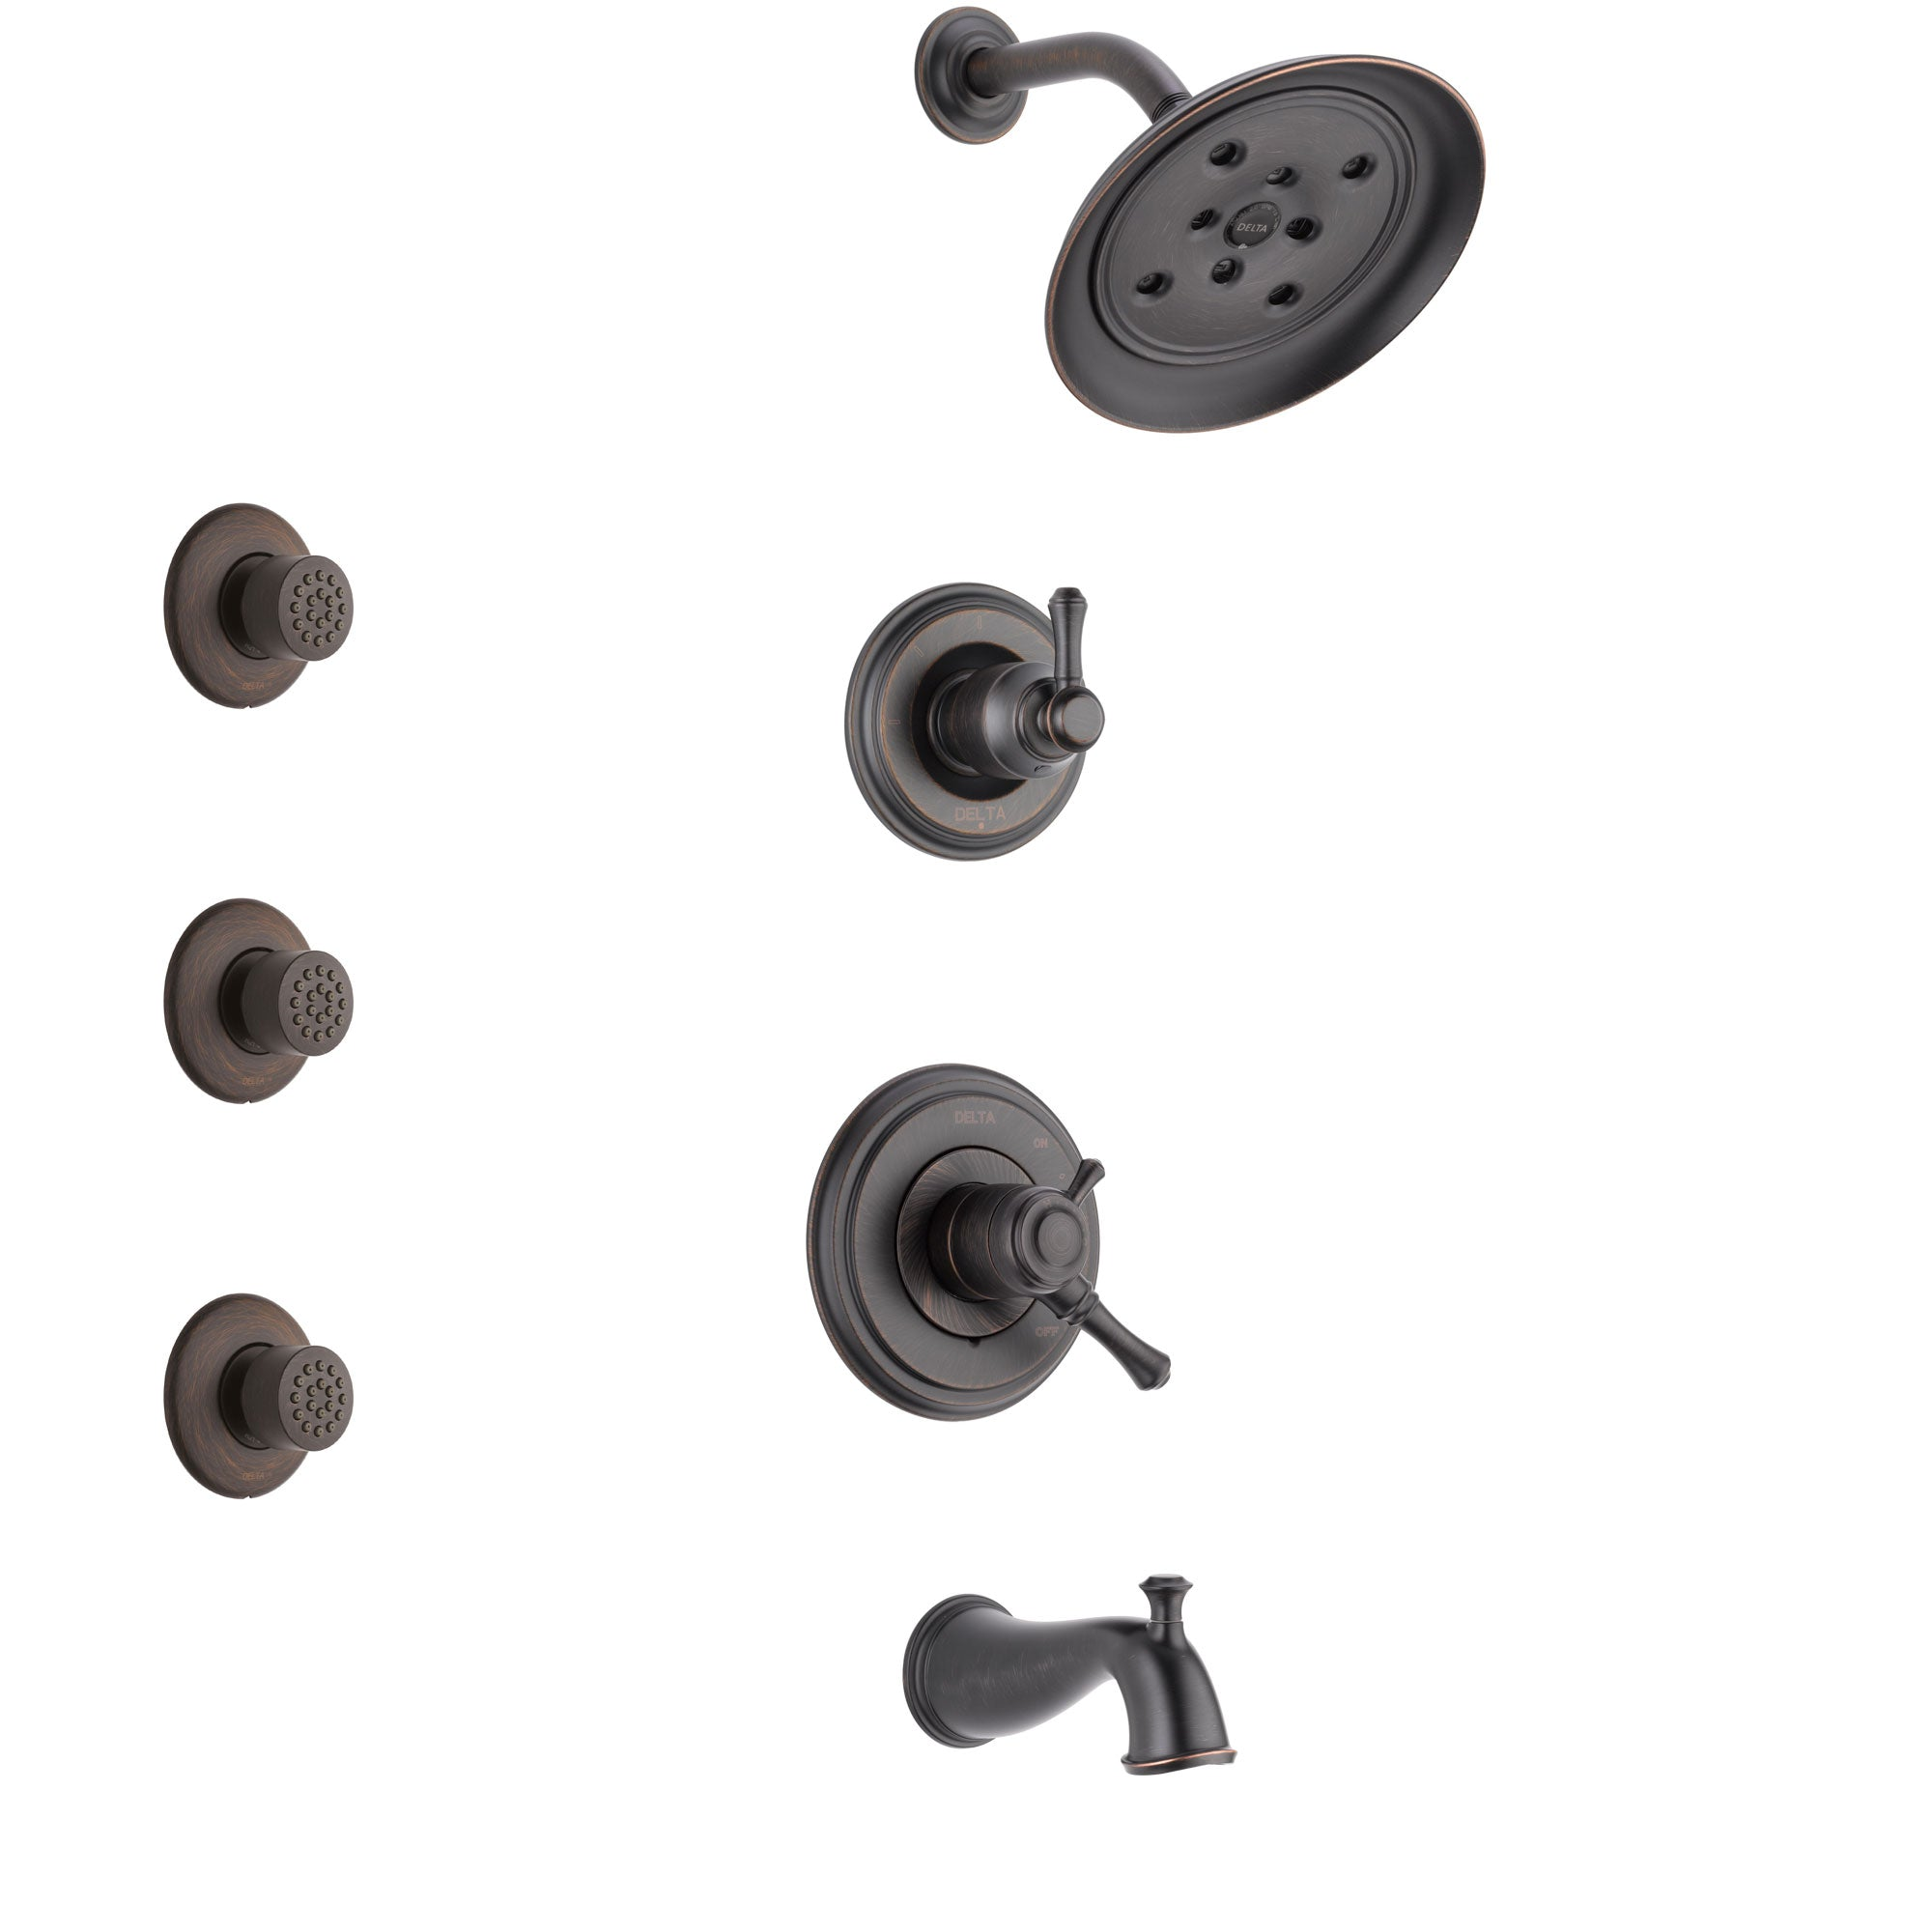 Delta Cassidy Venetian Bronze Finish Tub and Shower System with Dual Control Handle, 3-Setting Diverter, Showerhead, and 3 Body Sprays SS17497RB1